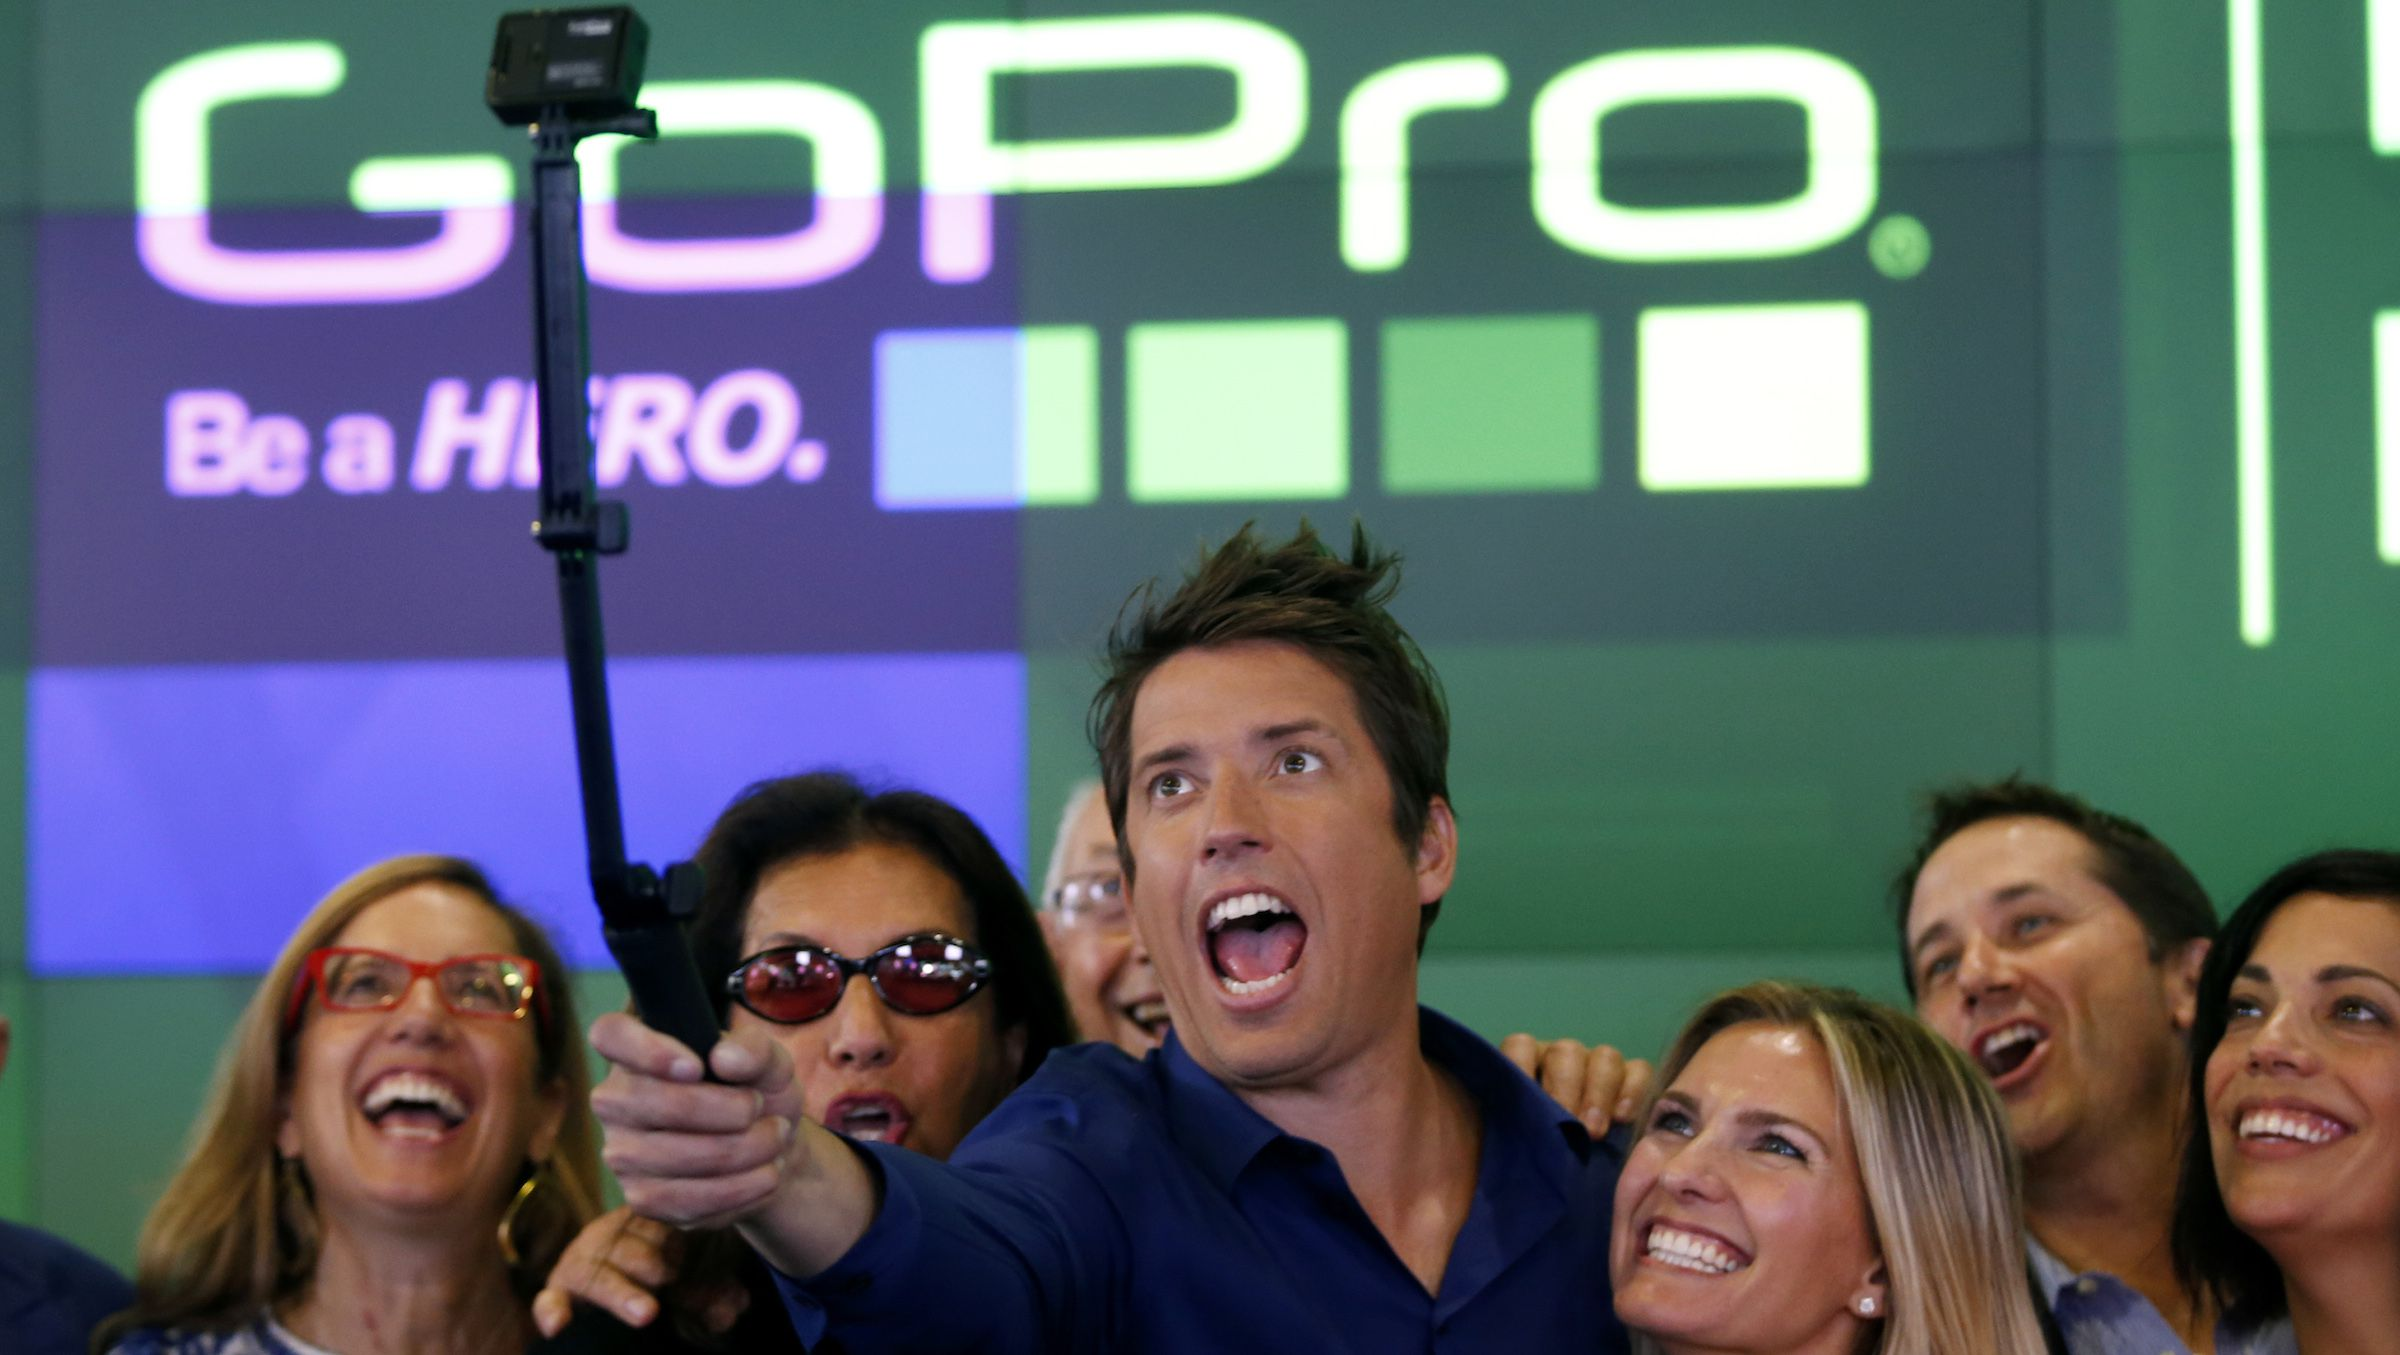 GoPro Inc's founder and CEO Nick Woodman (C) celebrates GoPro Inc's IPO with family and staff at the Nasdaq Market Site in New York City, June 26, 2014.